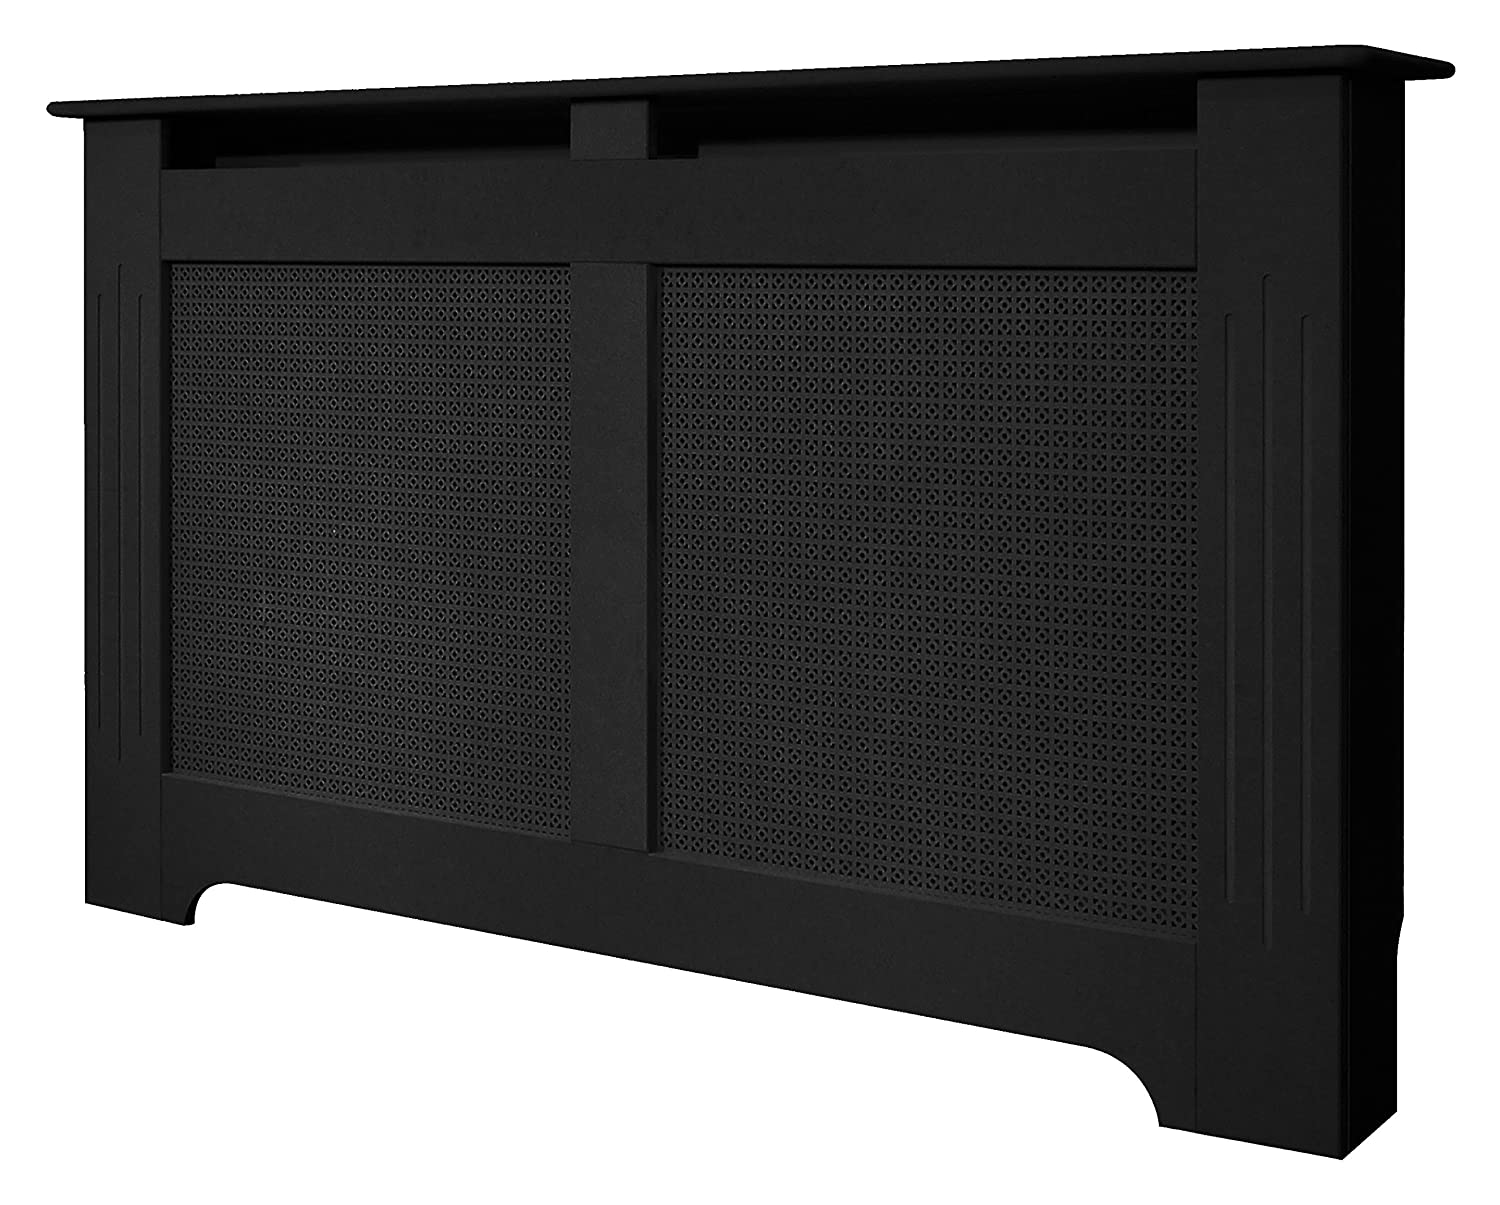 Adam Large Radiator Cover, 160 cm, Black Fired Up Corporation Ltd